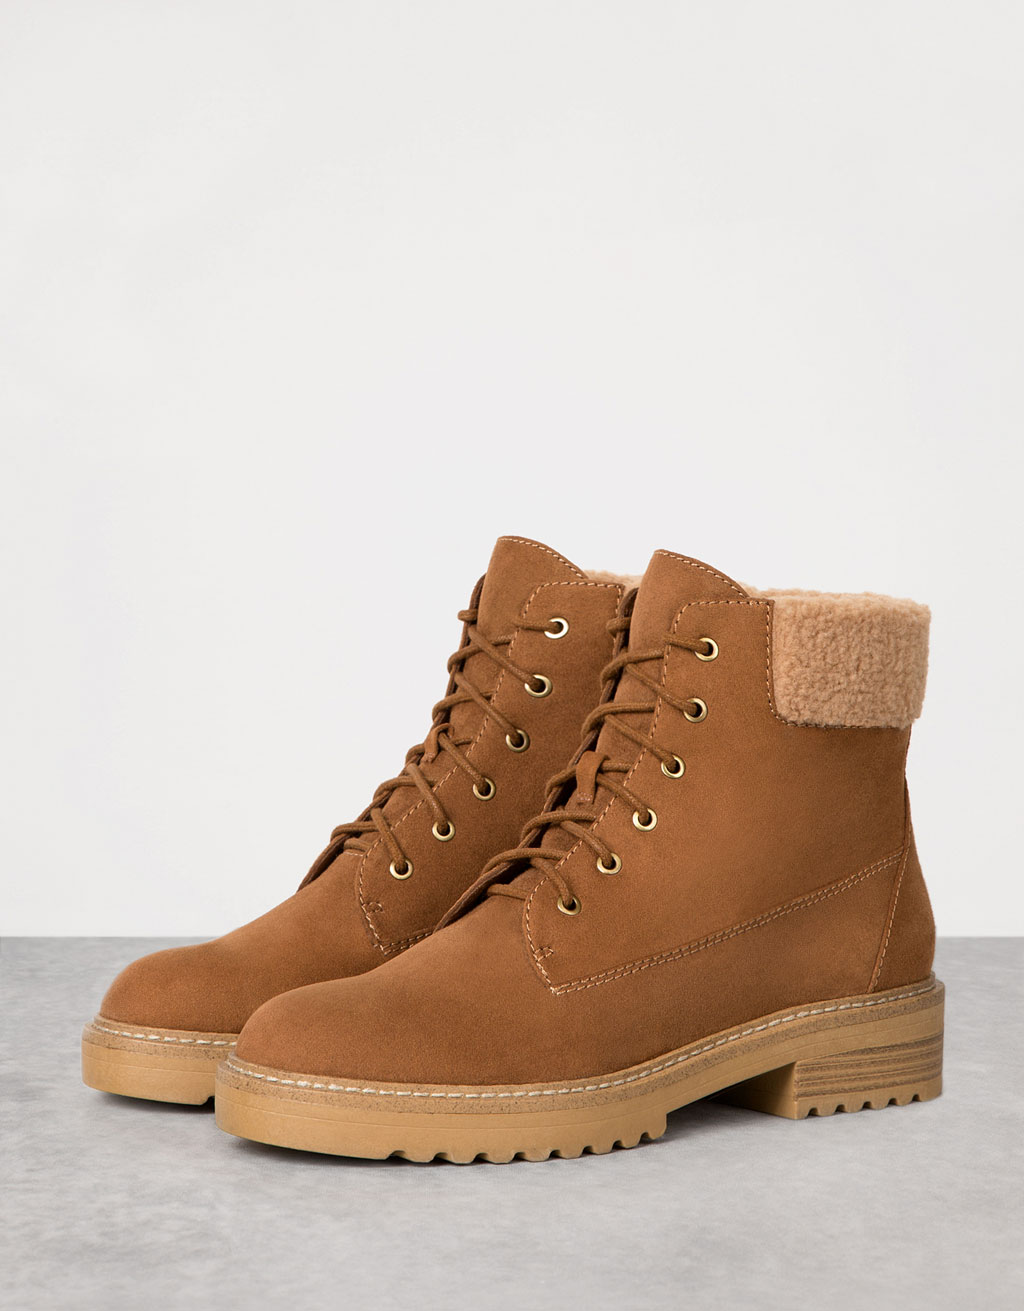 Lace-up shearling ankle boots